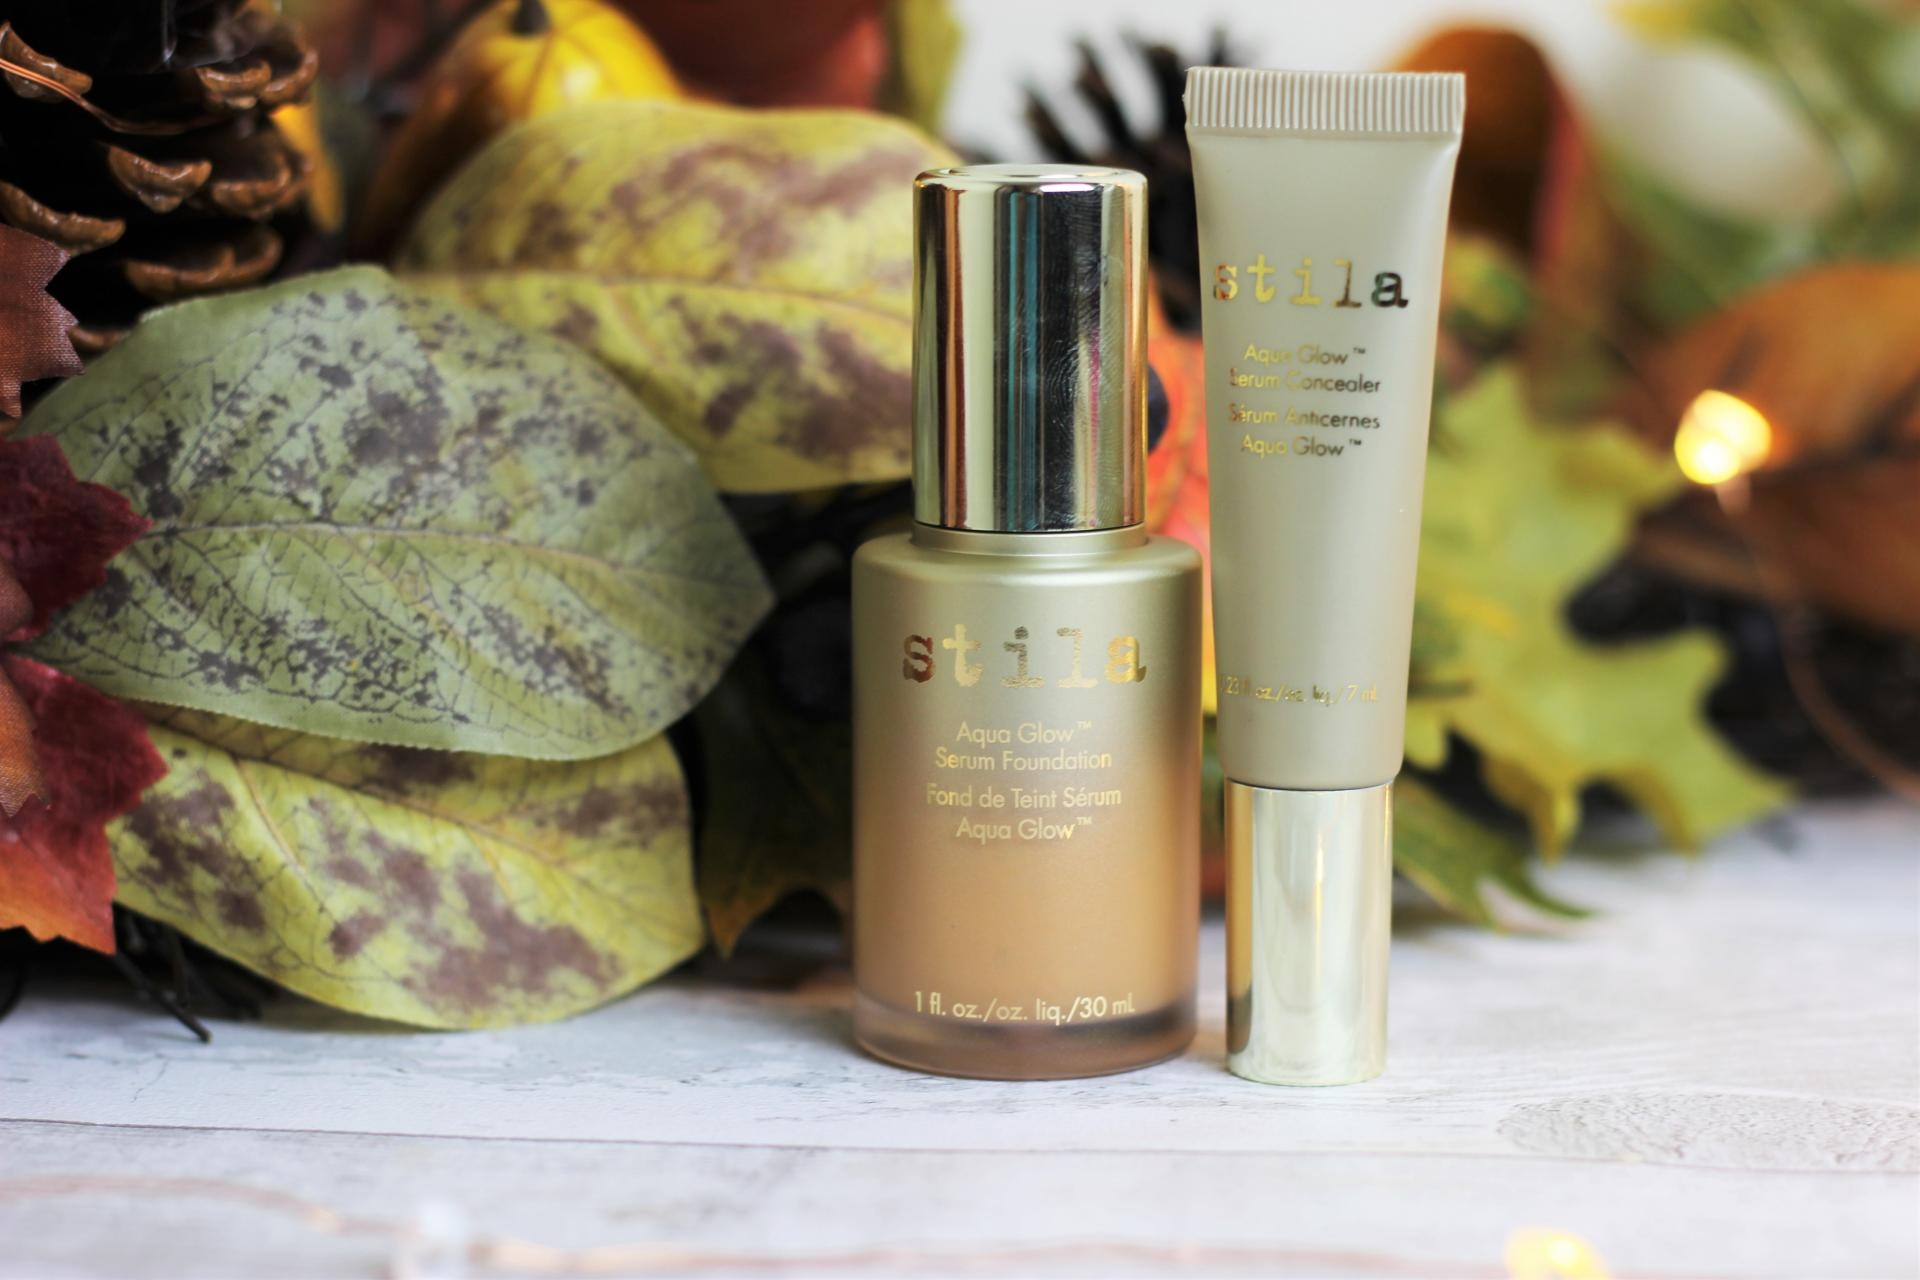 Stila Aqua Glow Foundation and Concealer